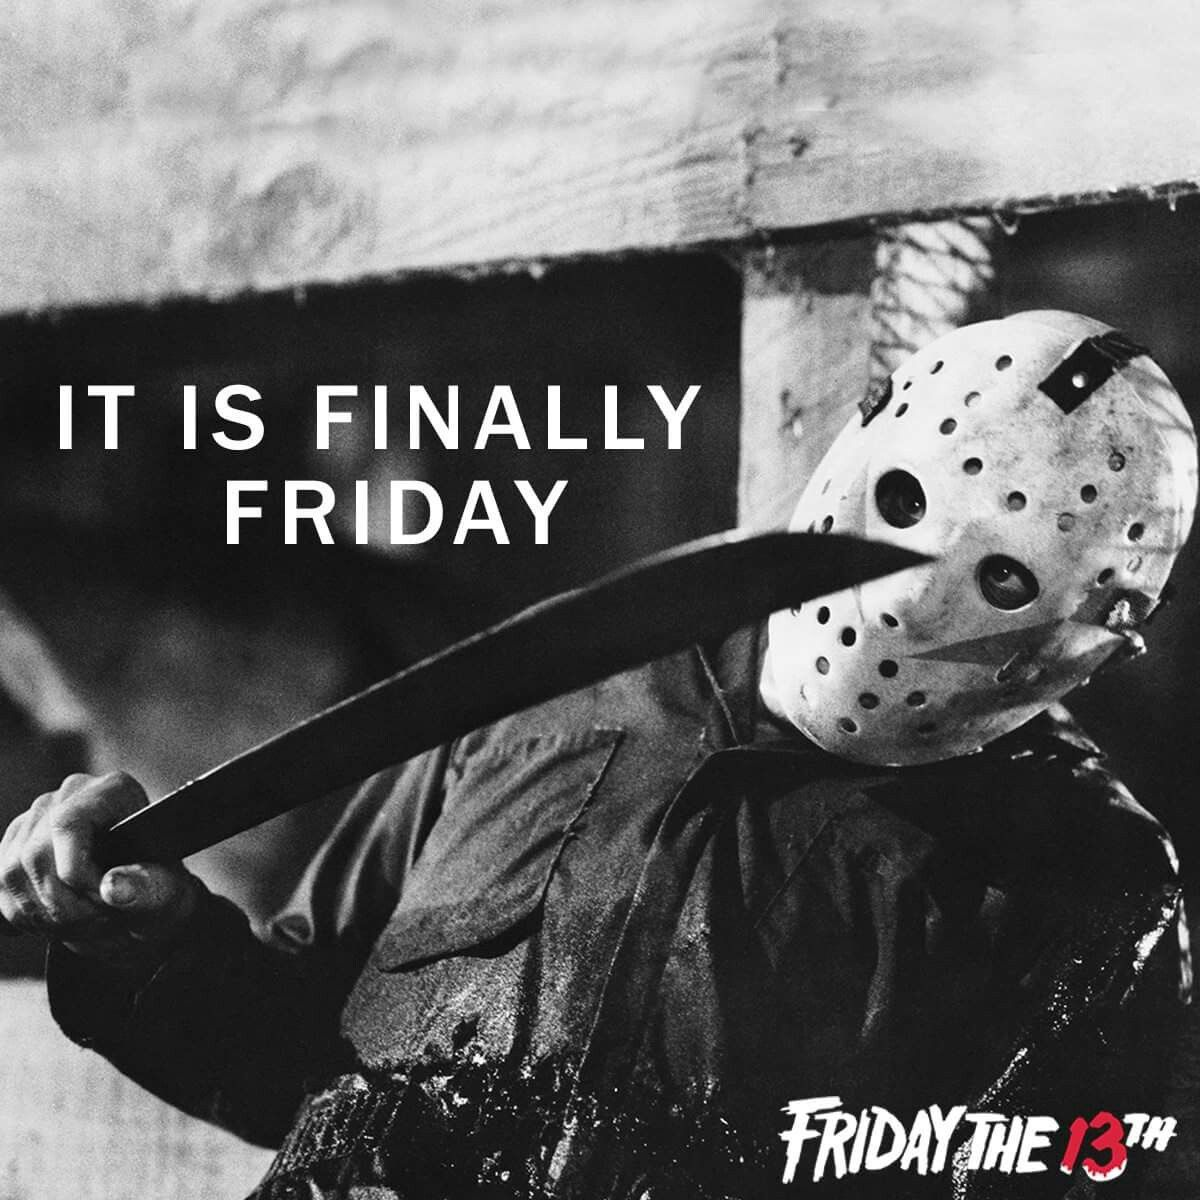 Hello, Friday! I've been waiting for you for a long time. You just save me when a killer came hunting me down.